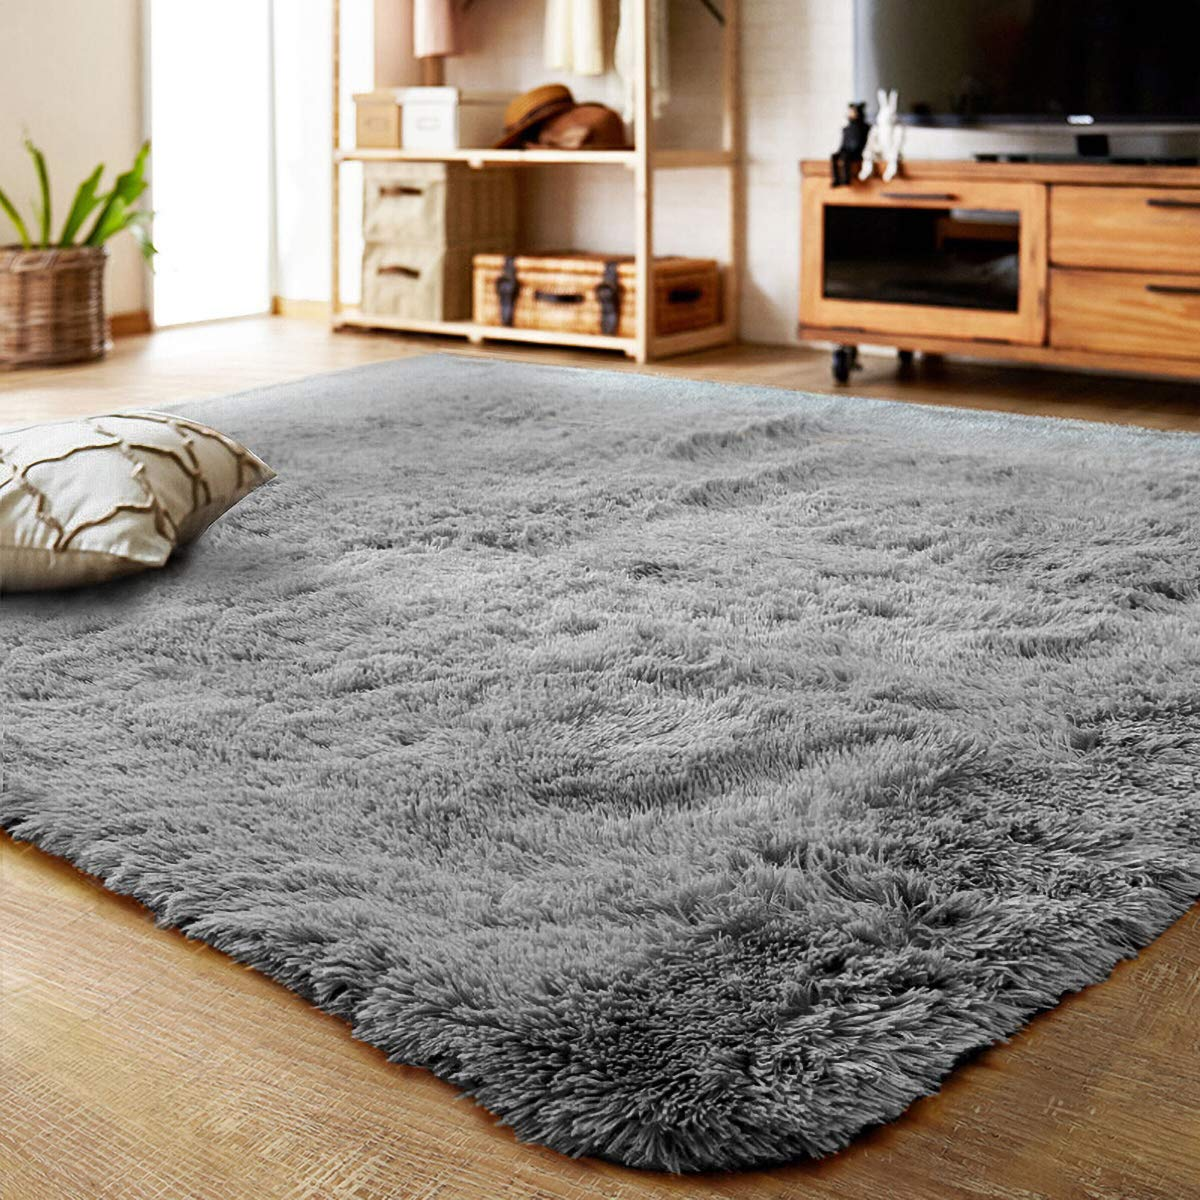 Amazon com lochas ultra soft indoor modern area rugs fluffy living room carpets suitable for children bedroom home decor nursery rugs 4 feet by 5 3 feet